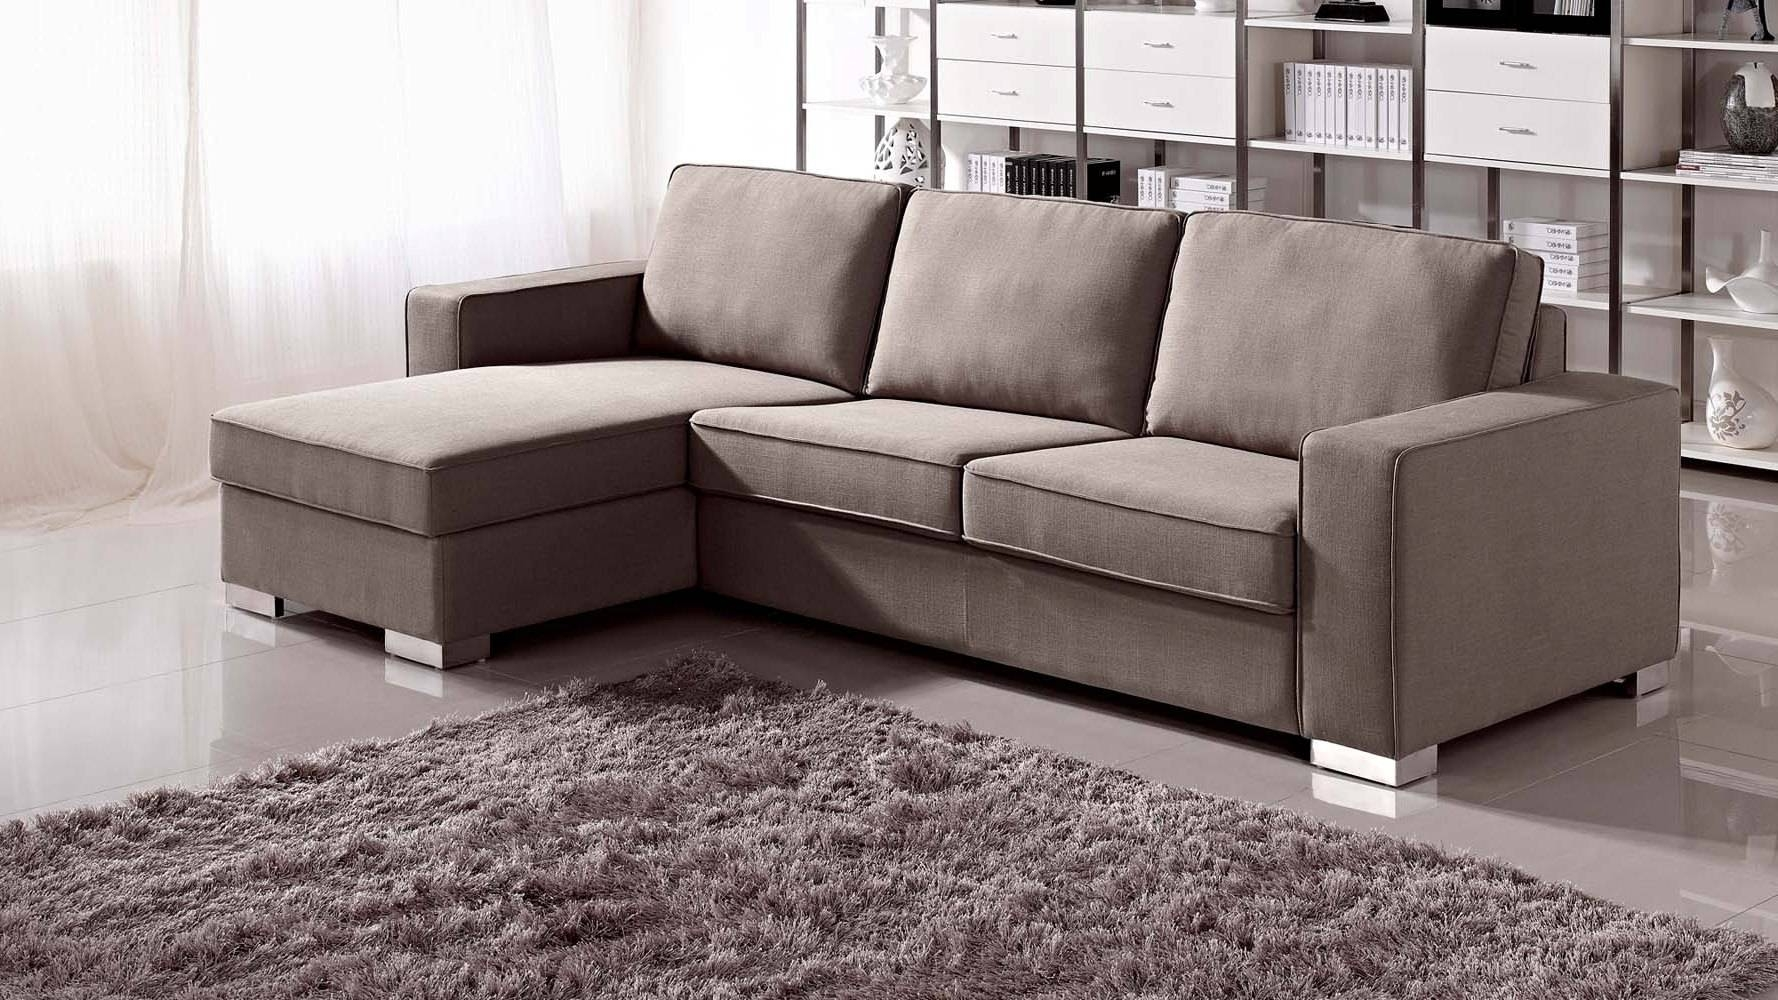 Sofas Center : Broyhillional Sofa Design Brilliant Ideas With Used in Broyhill Sectional Sofas (Image 25 of 30)